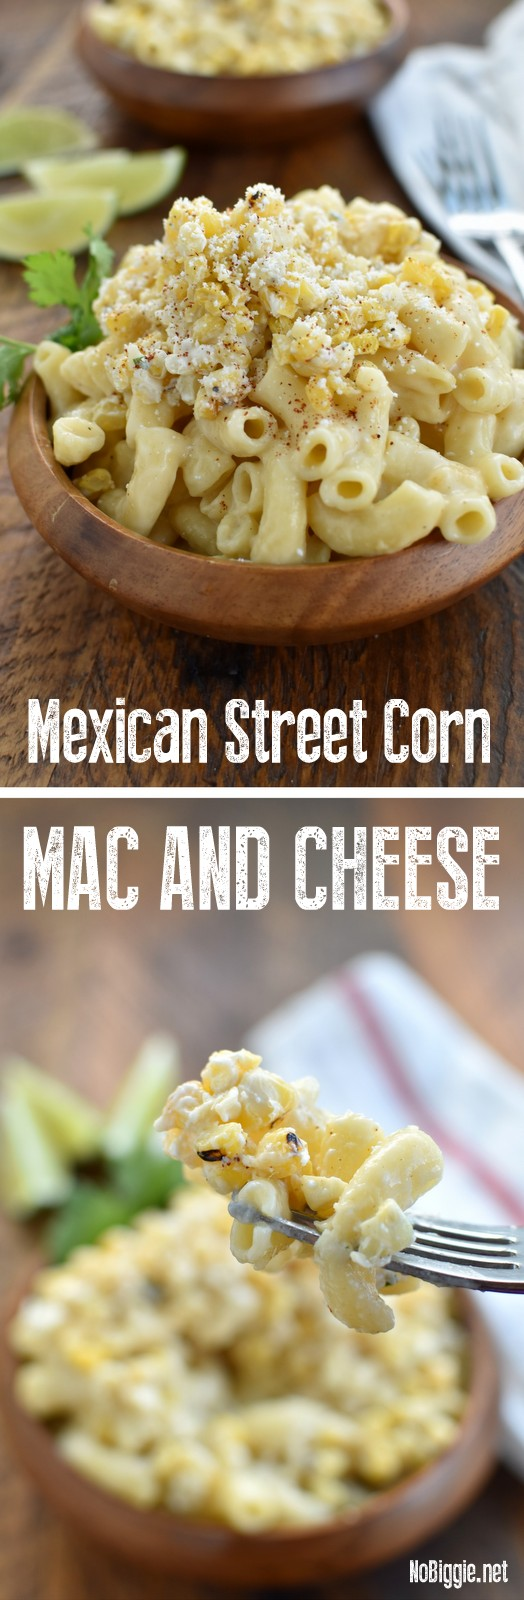 Mexican Street Corn Mac and Cheese | NoBiggie.net